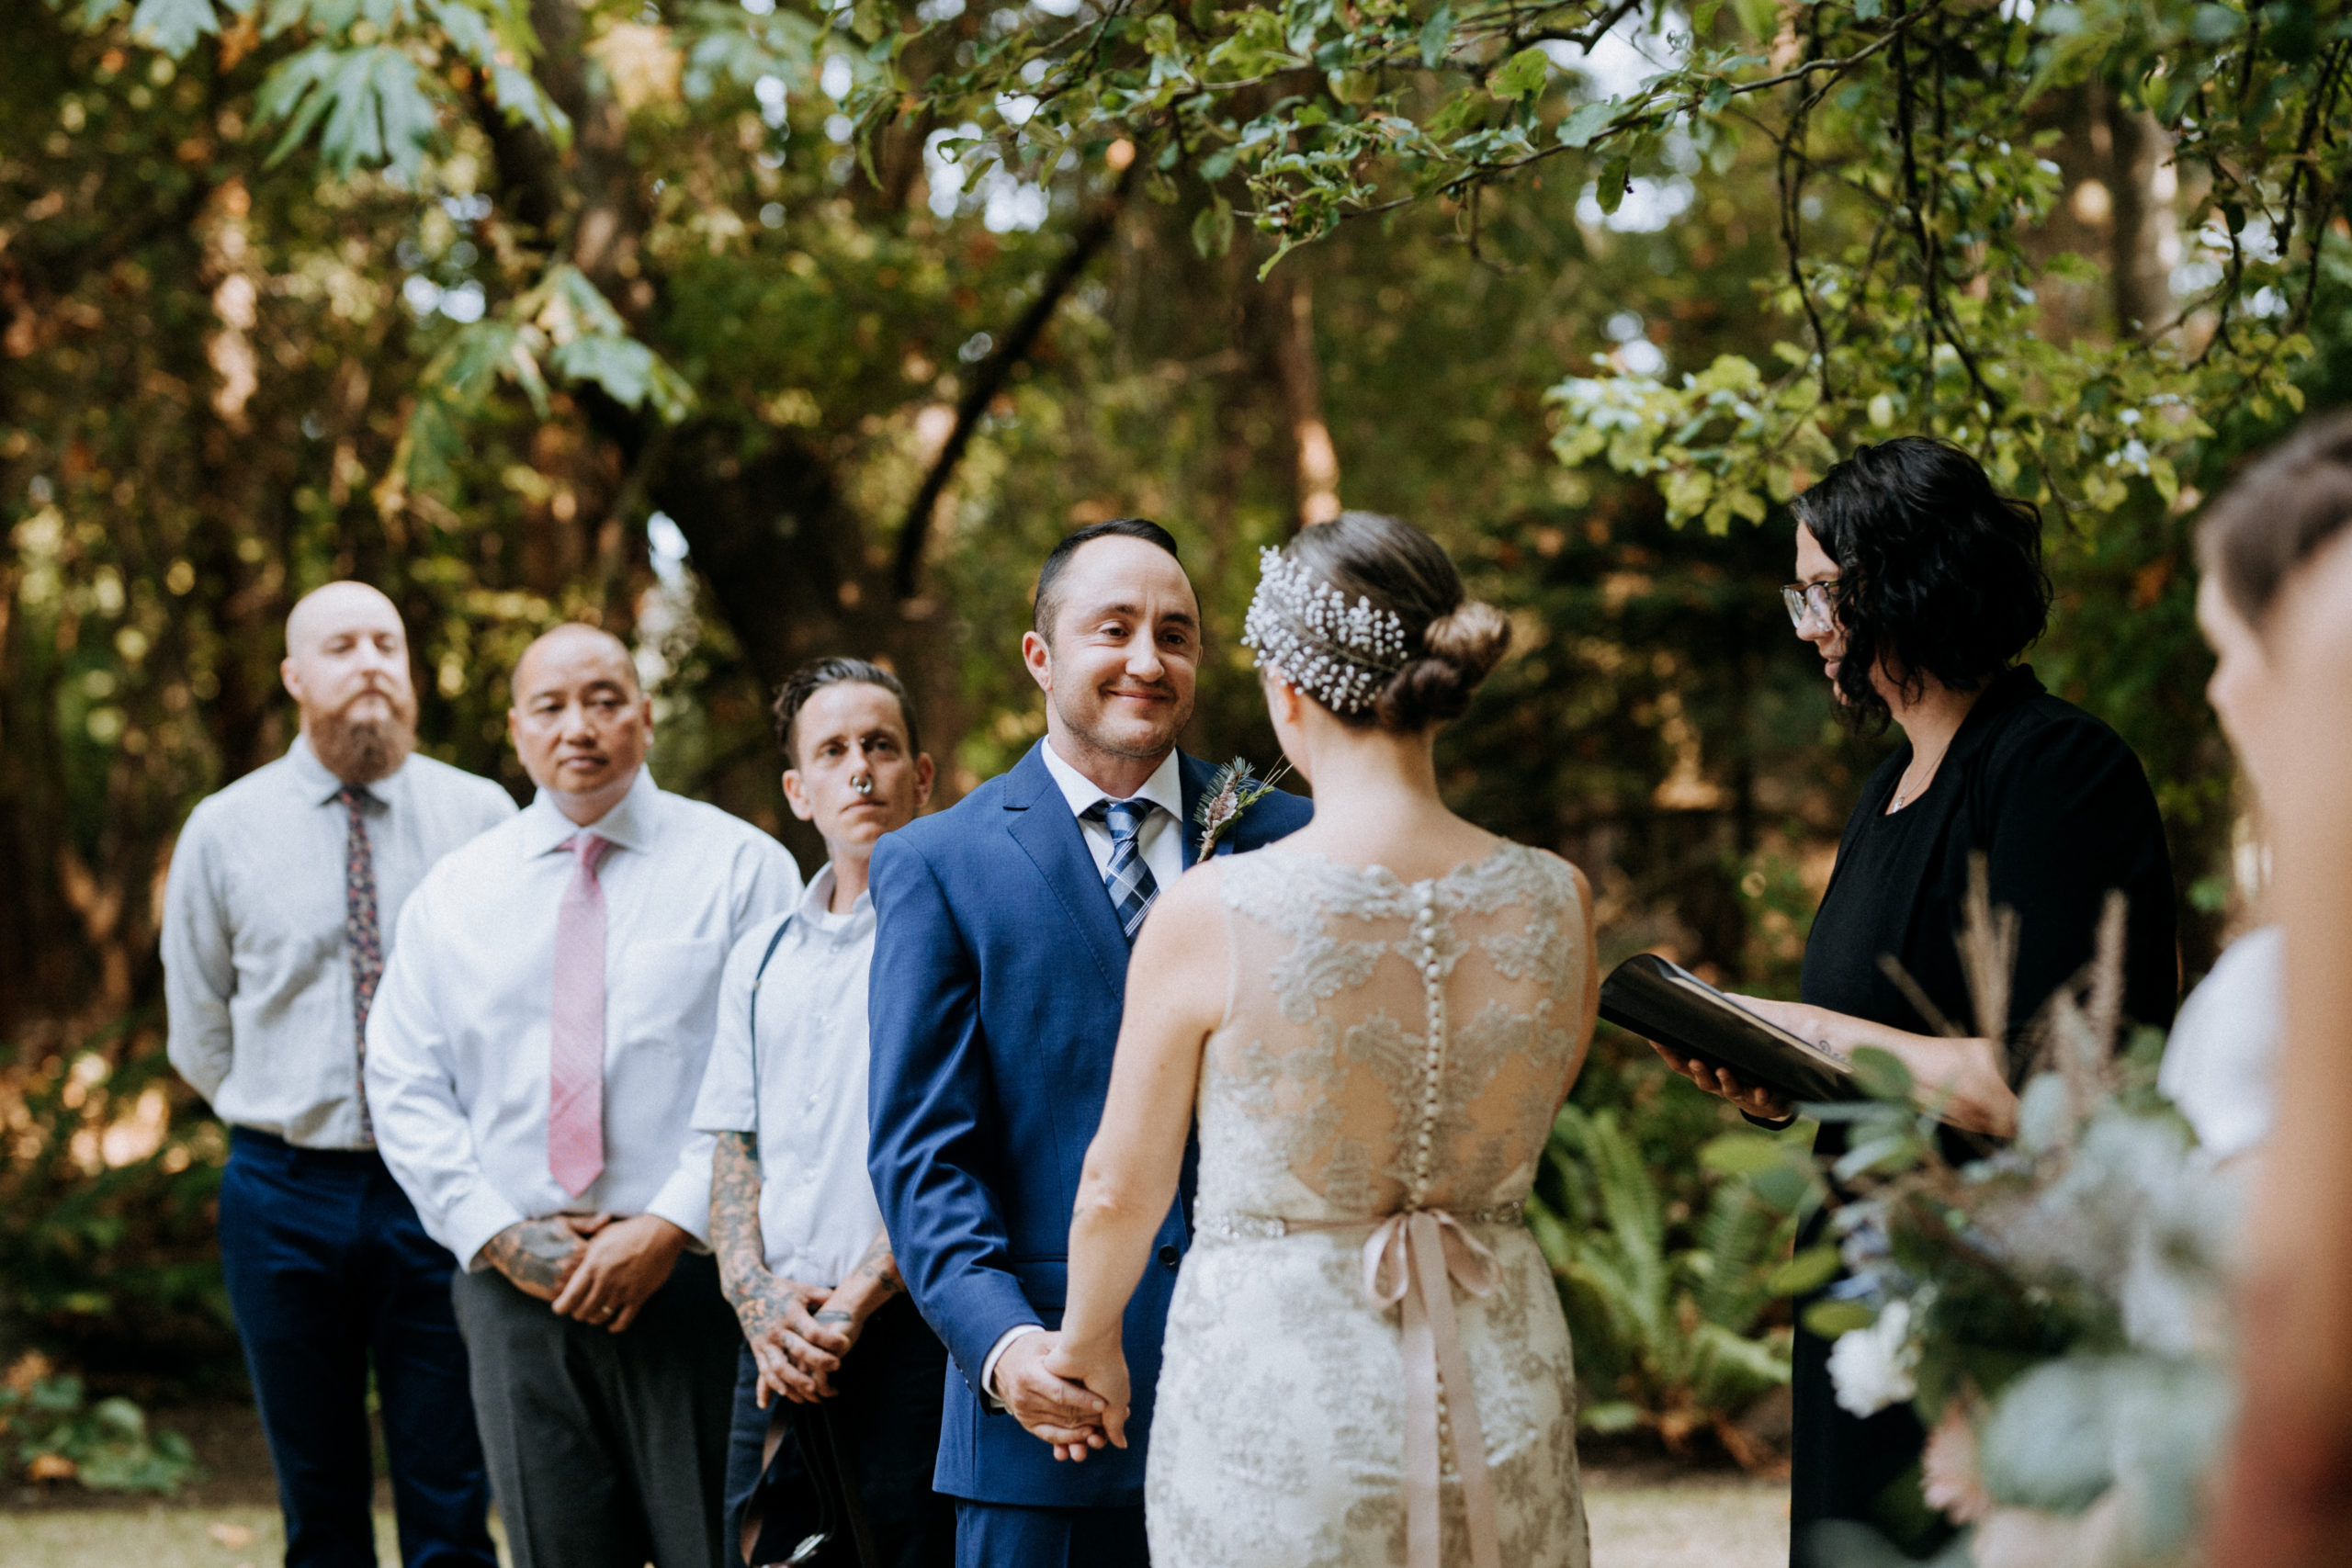 Vancouver Island wedding with Officiant Chris-Ann